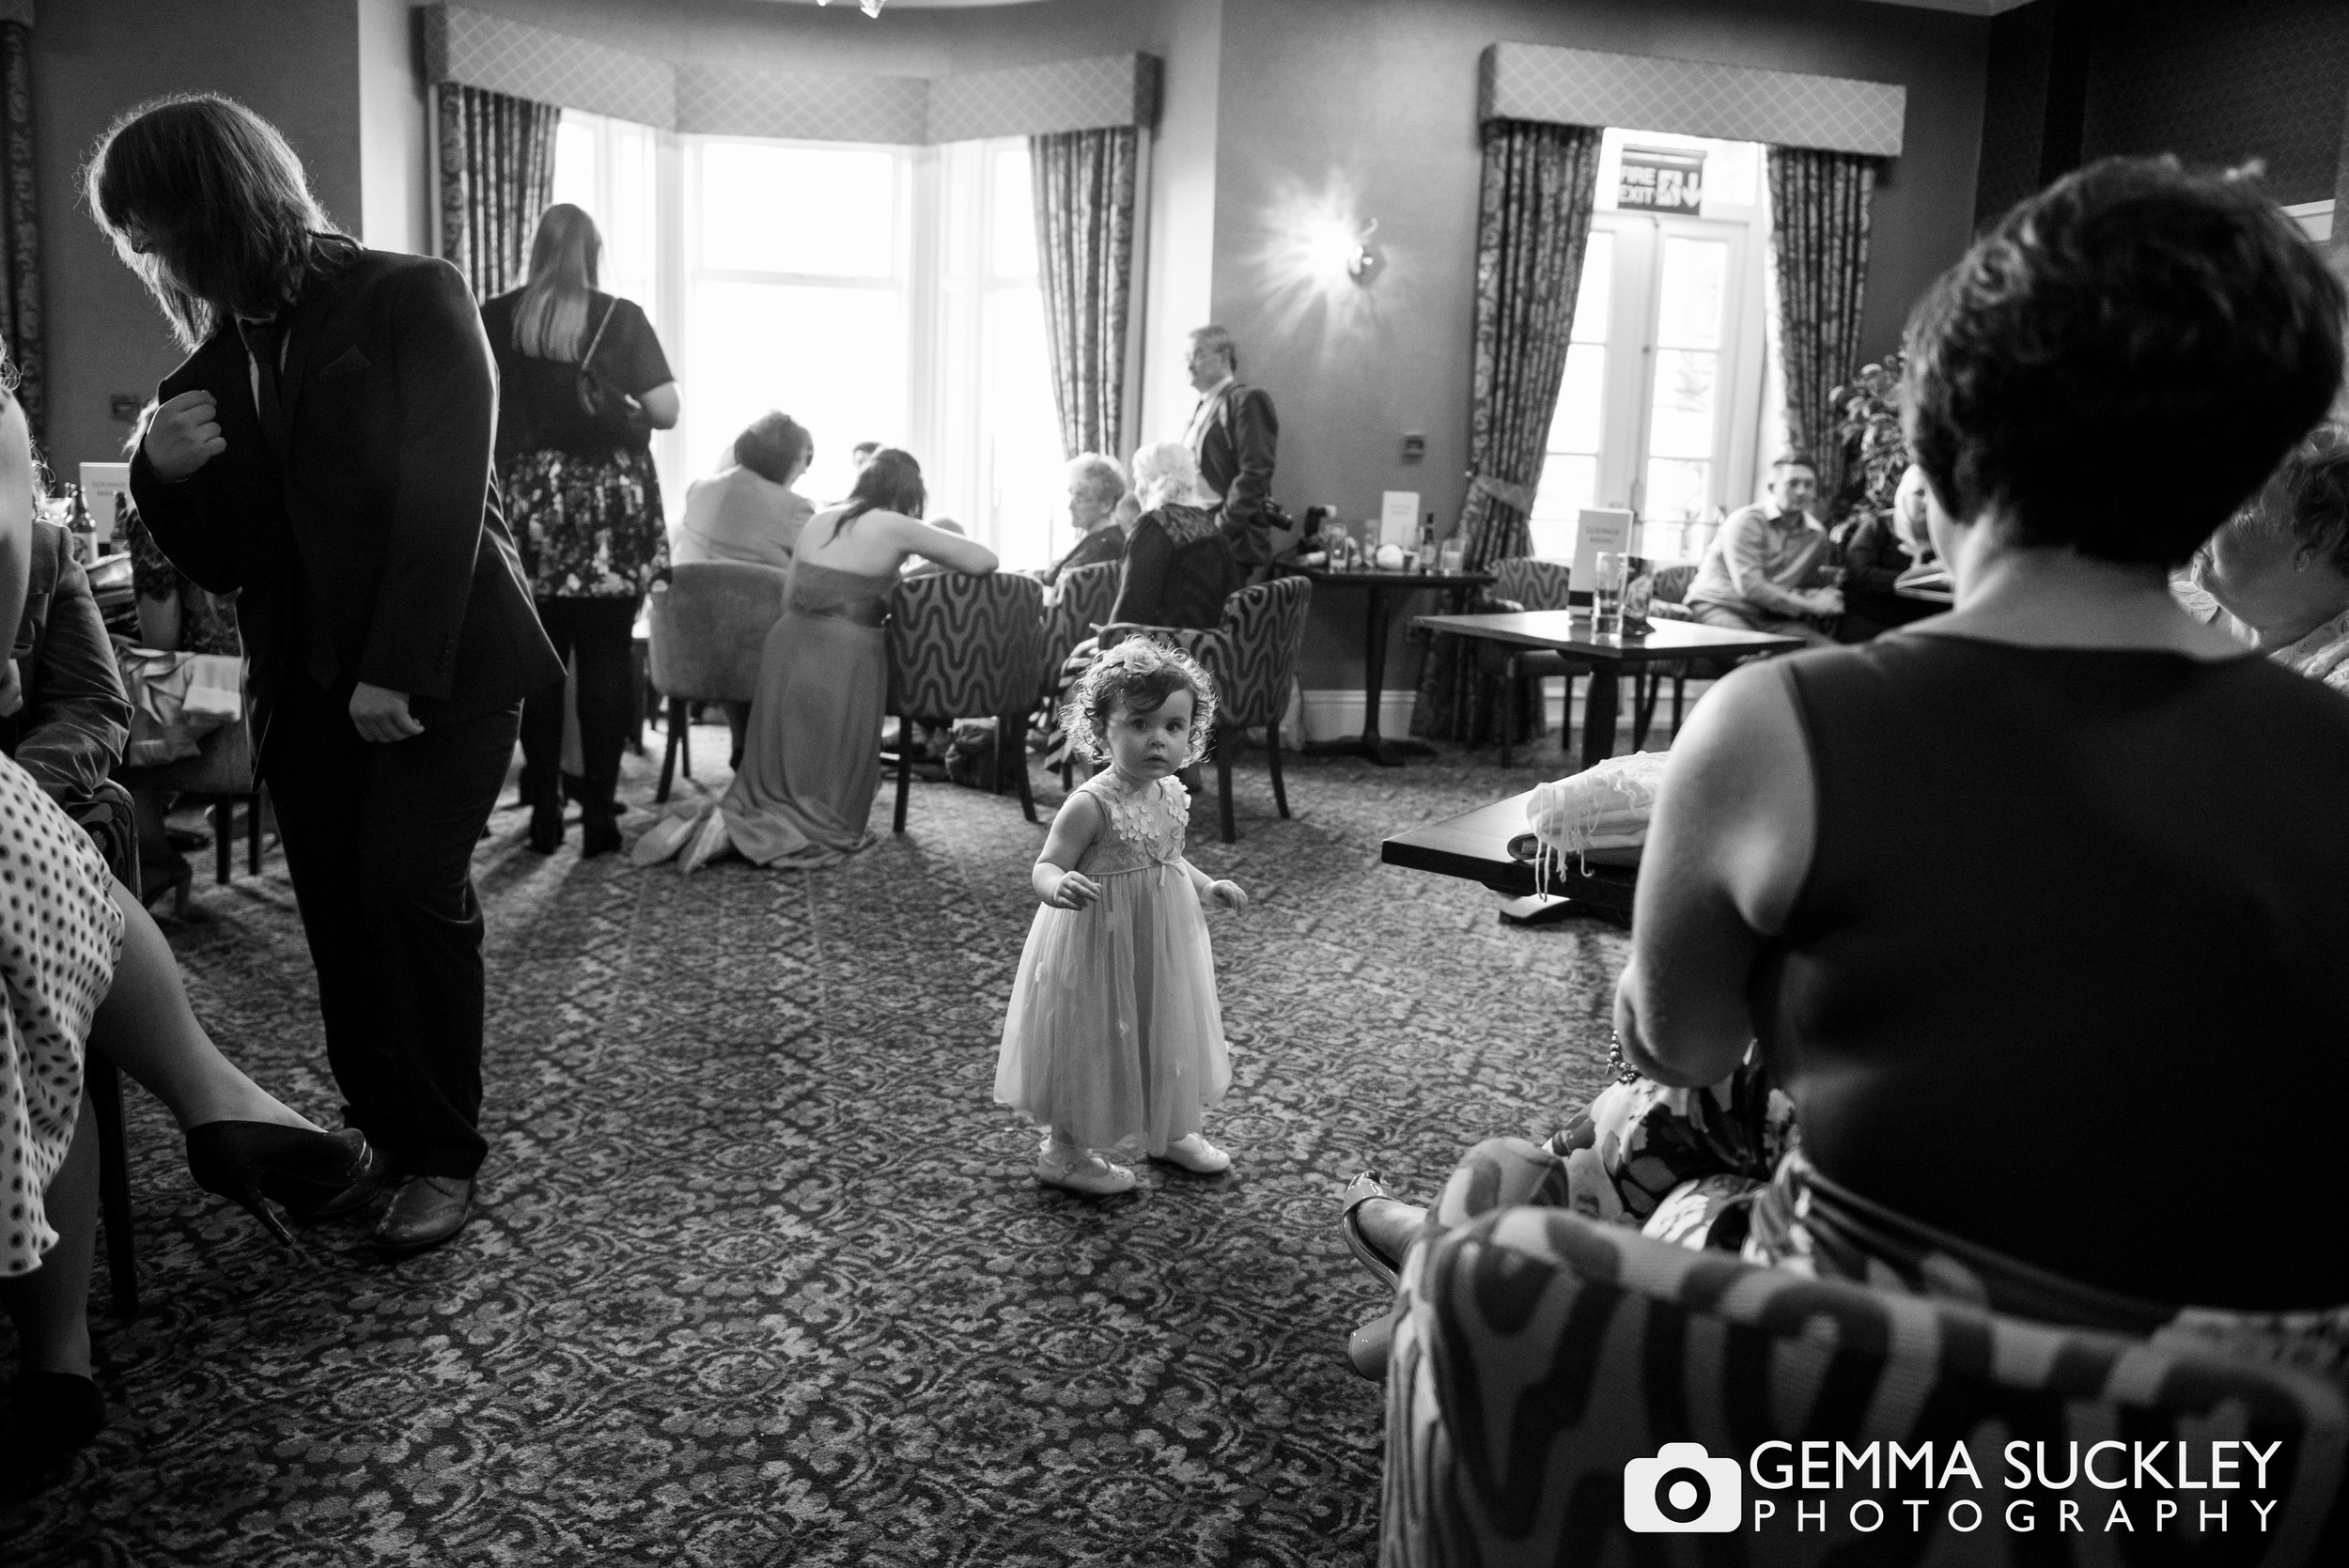 craigland-ilkley-wedding.jpg